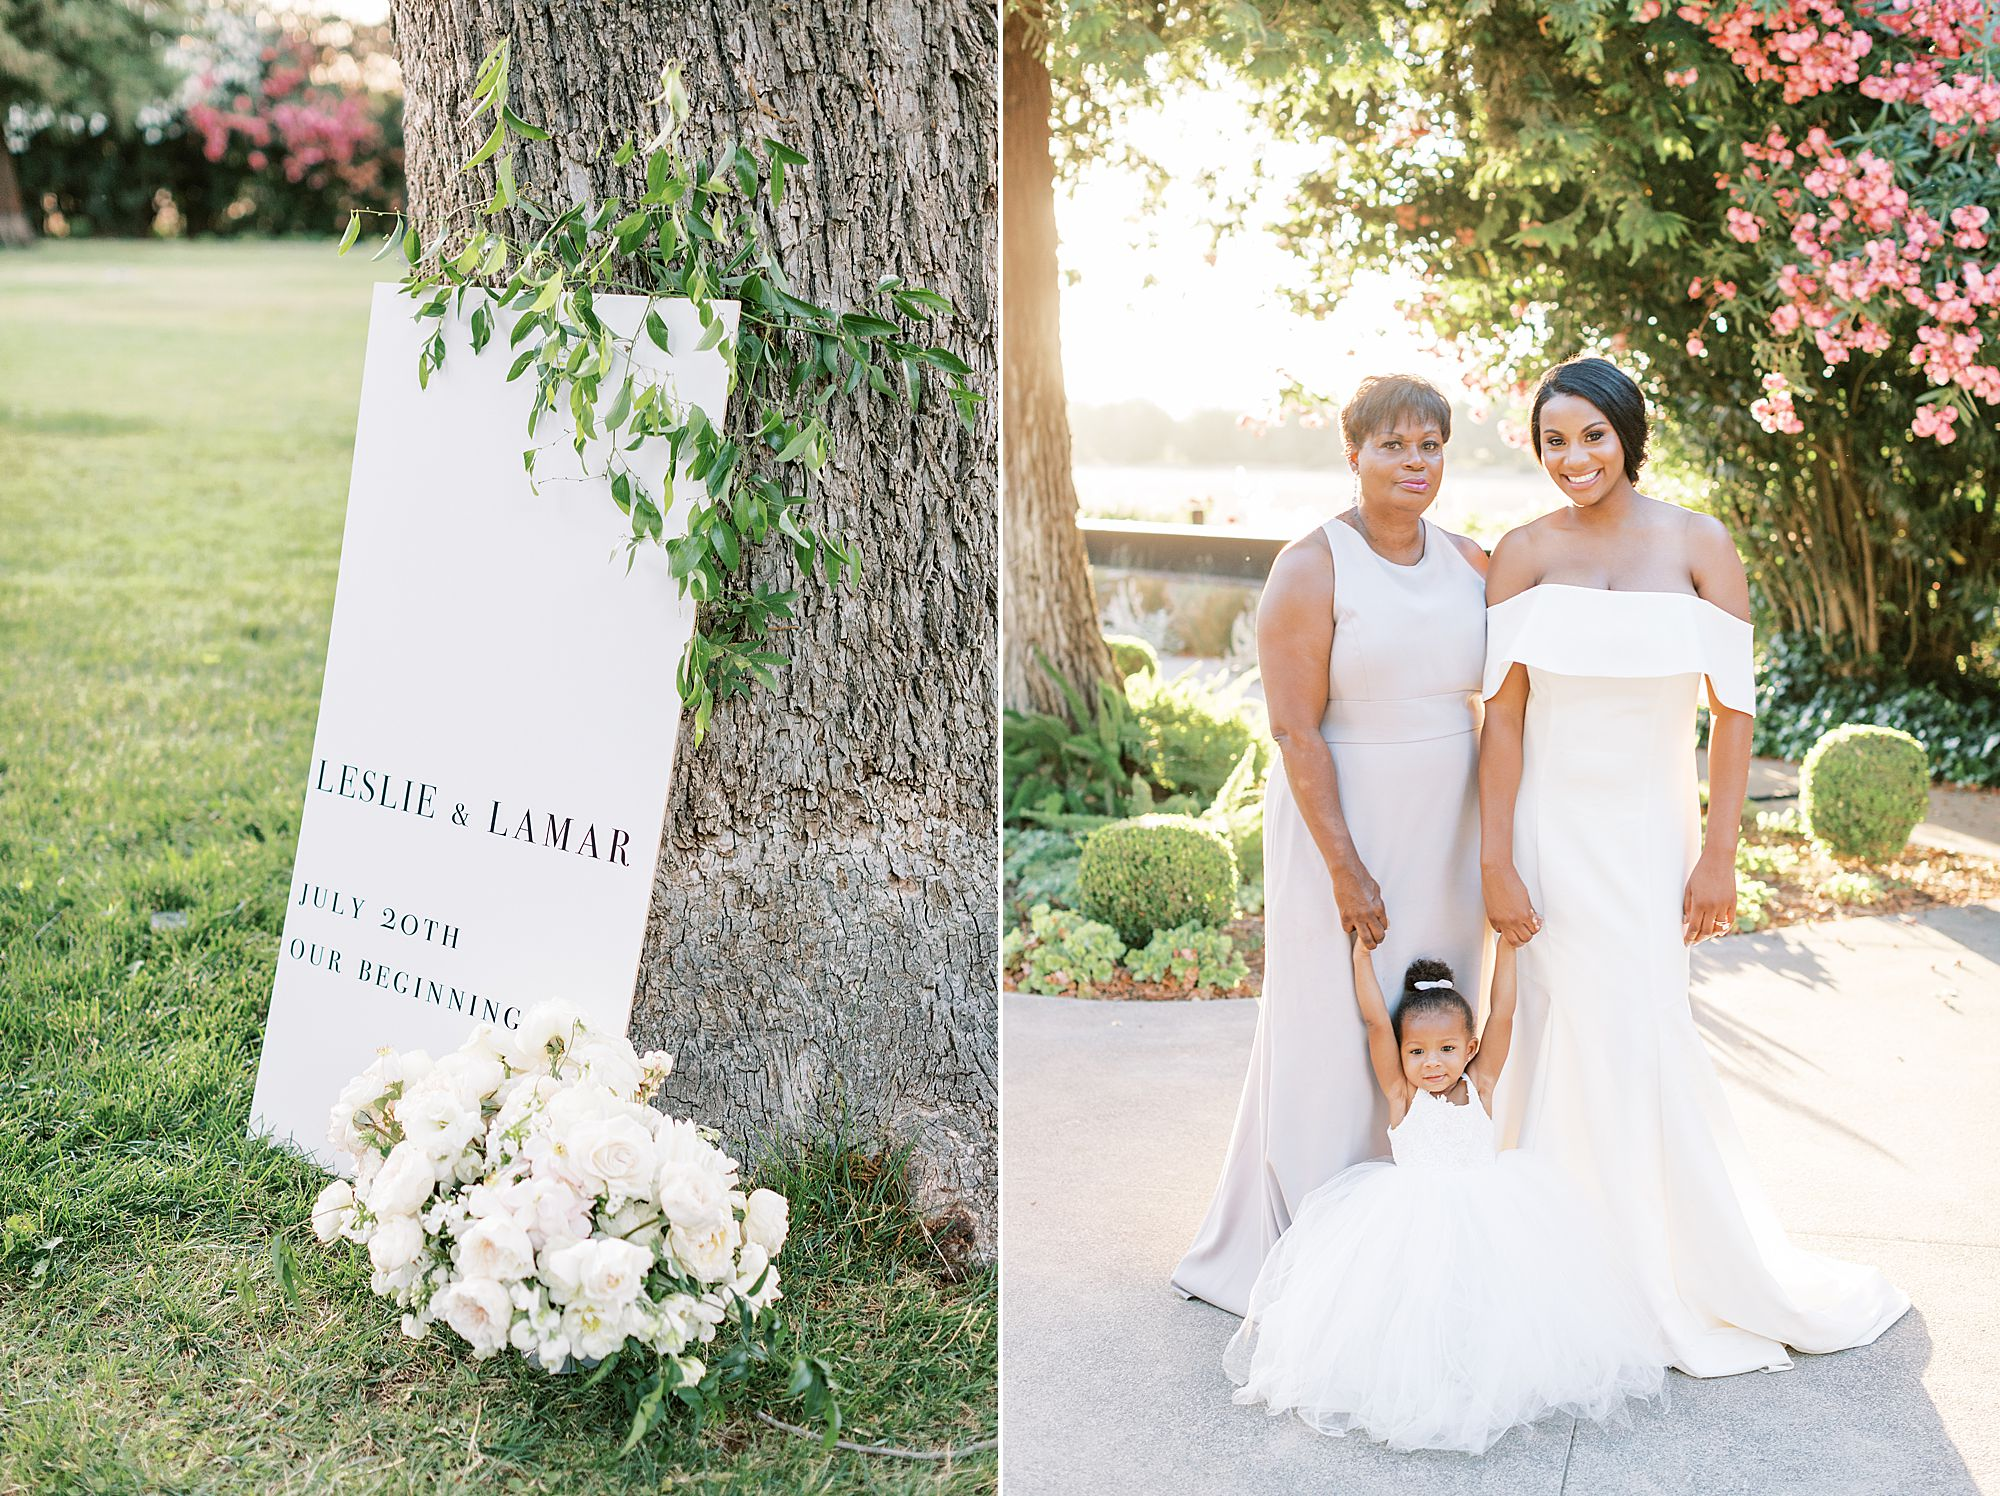 Park Winters Micro-Wedding Inspiration on Style Me Pretty - Stephanie Teague Events - Ashley Baumgartner - Park Winters Wedding - Black Tie Wedding - Micro-Wedding Sacramento Photographer_0073.jpg